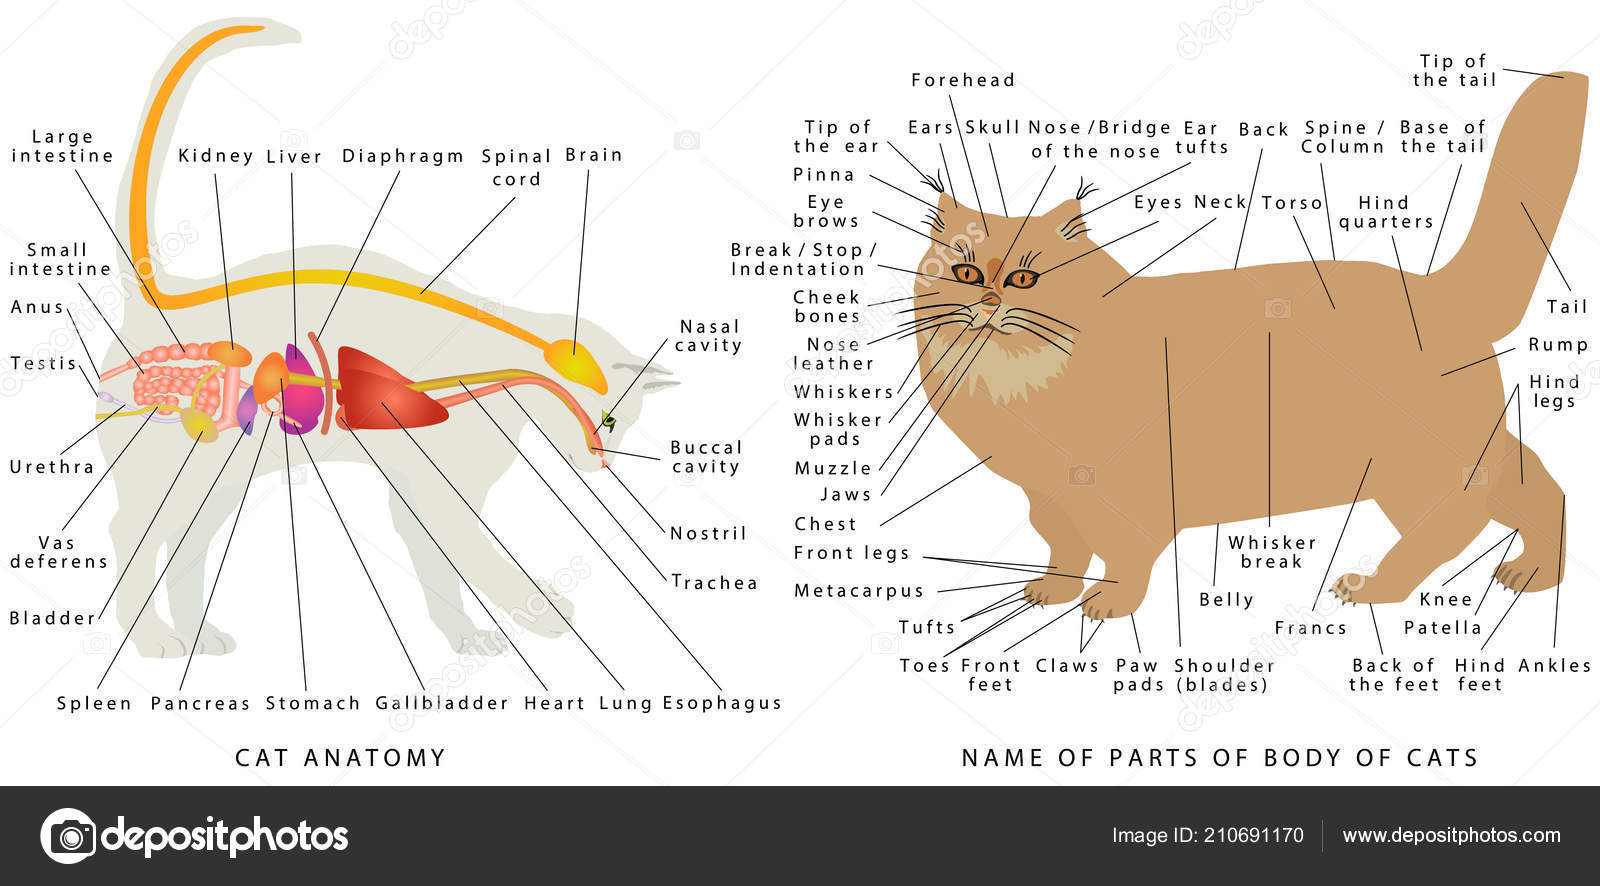 cat anatomy  domestic cat's anatomy  cat's organ anatomy diagram  digestive  system of the cat  schematic representation of a domestic cat